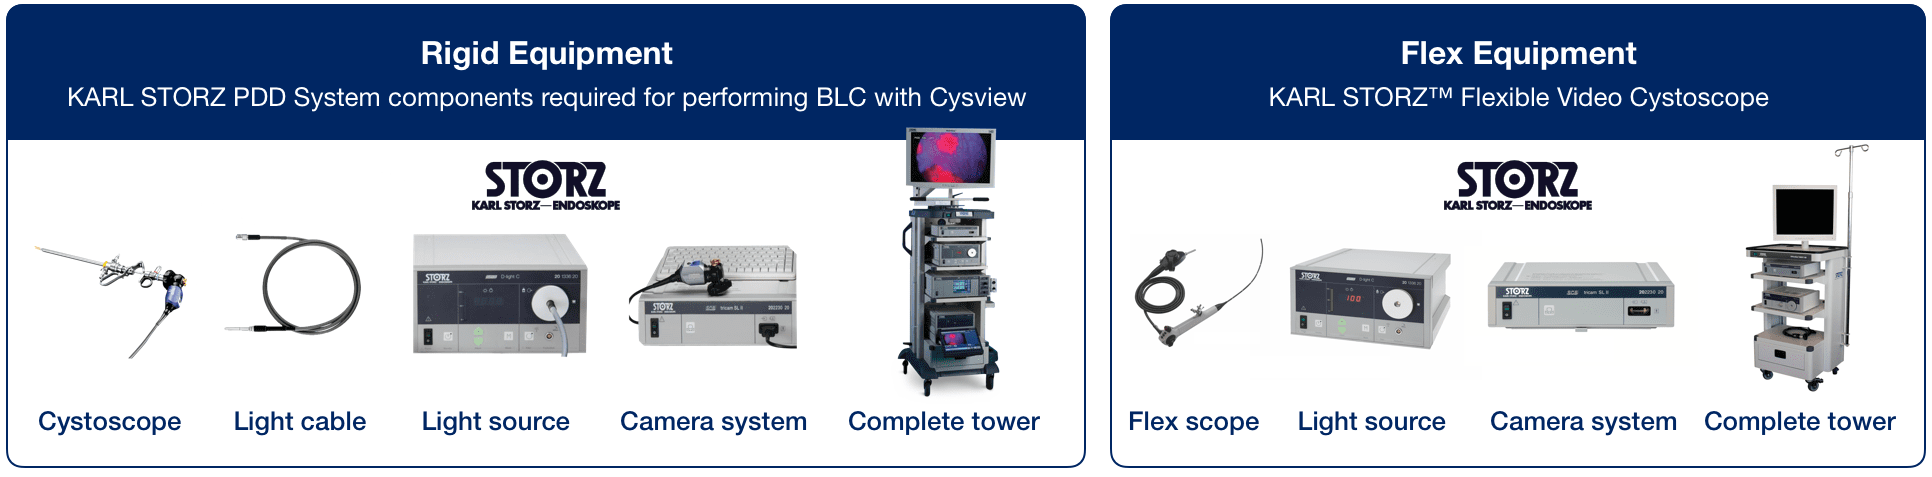 reigid and flexible cystoscopy with Cysview